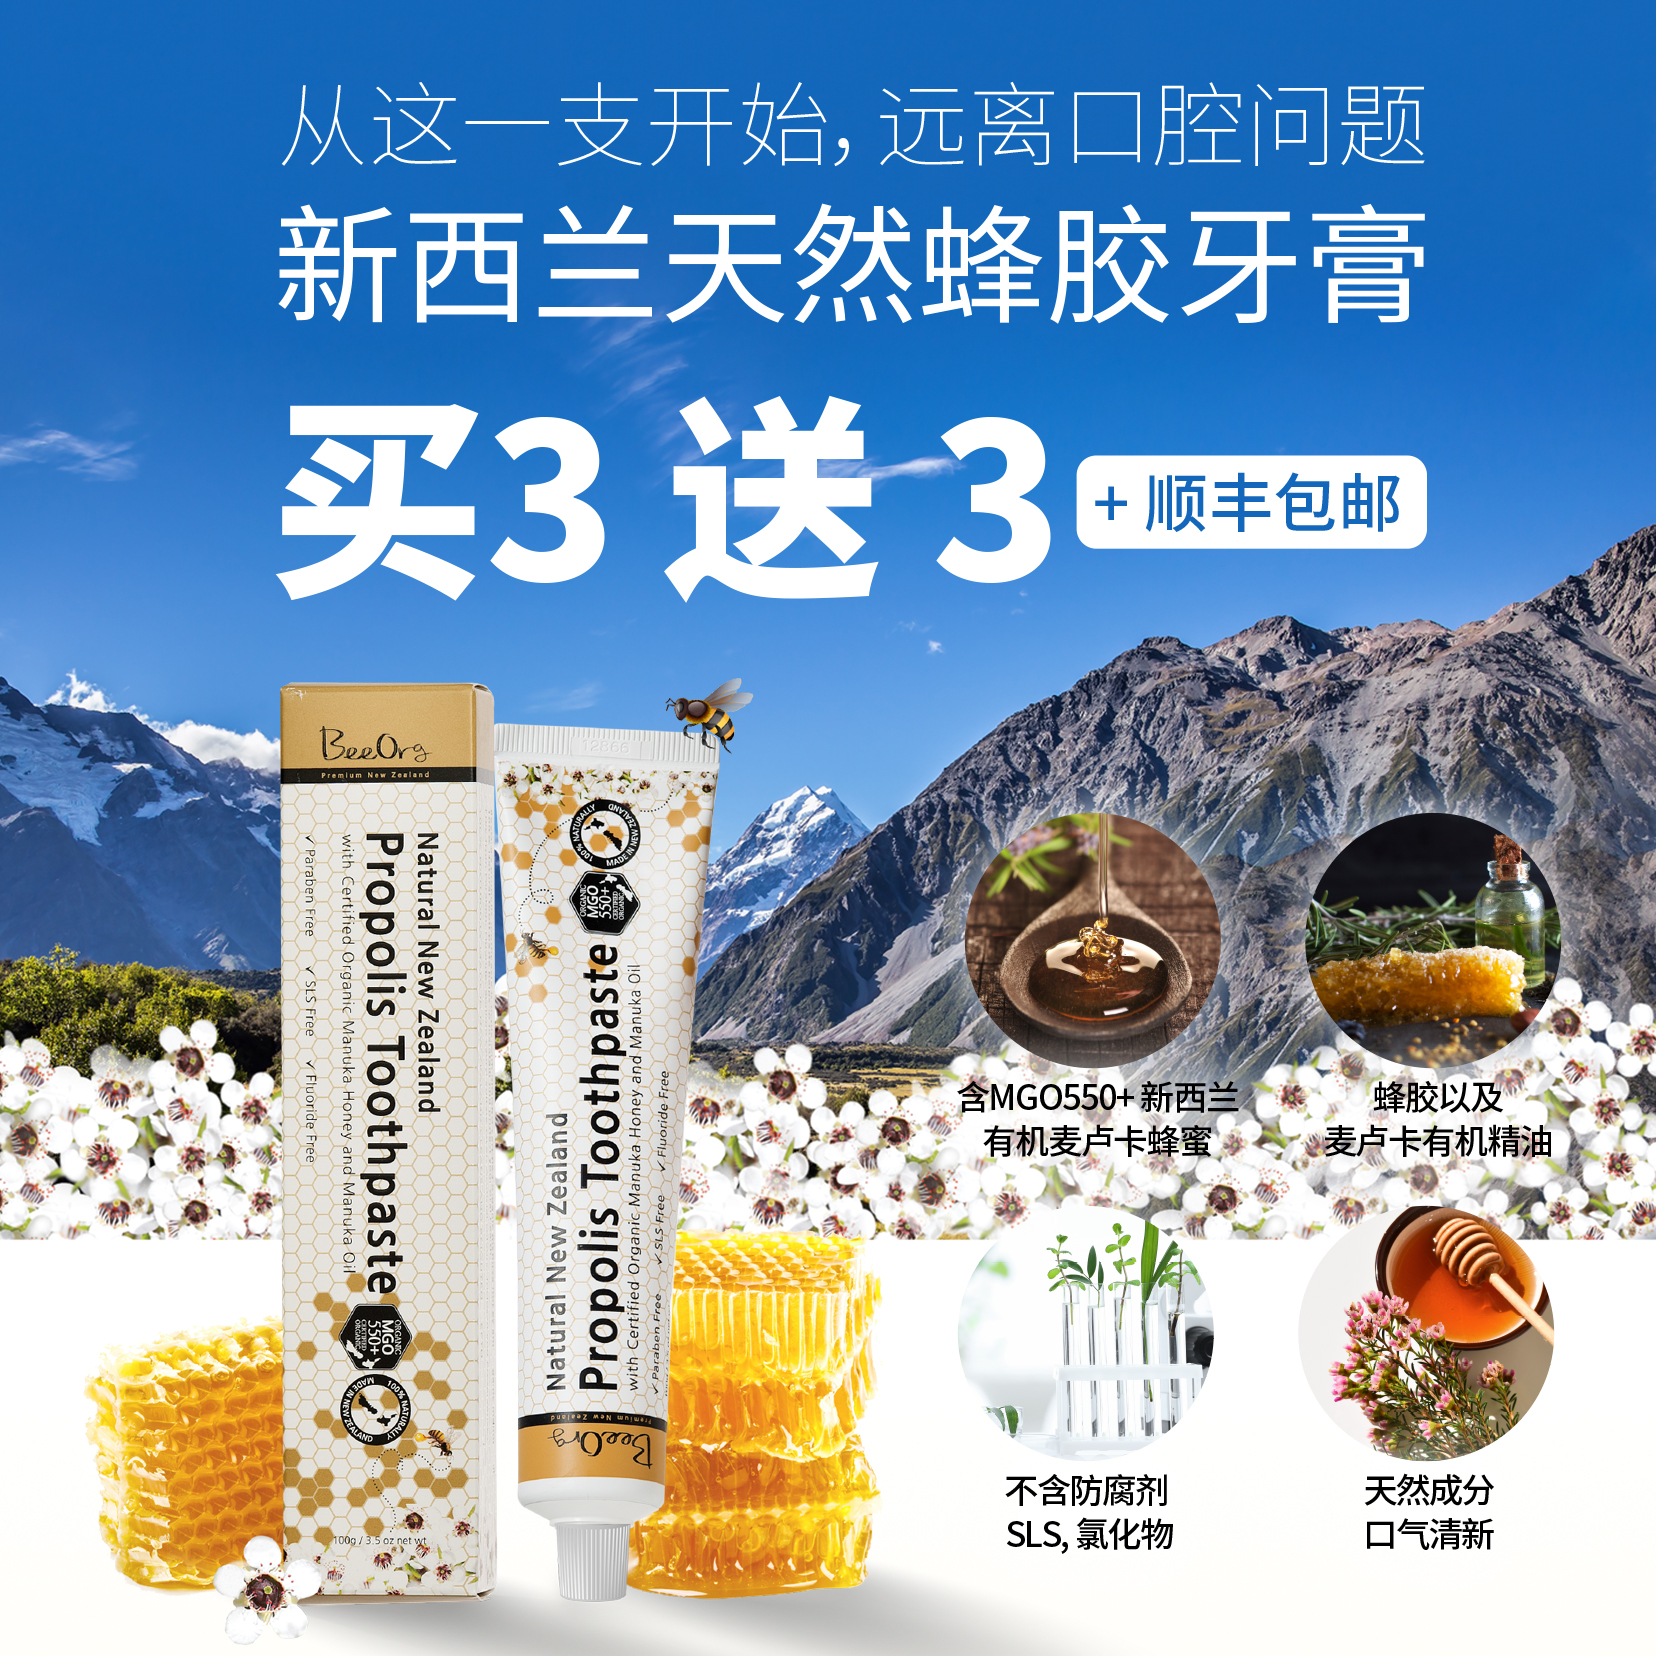 beeorg toothpaste promotion